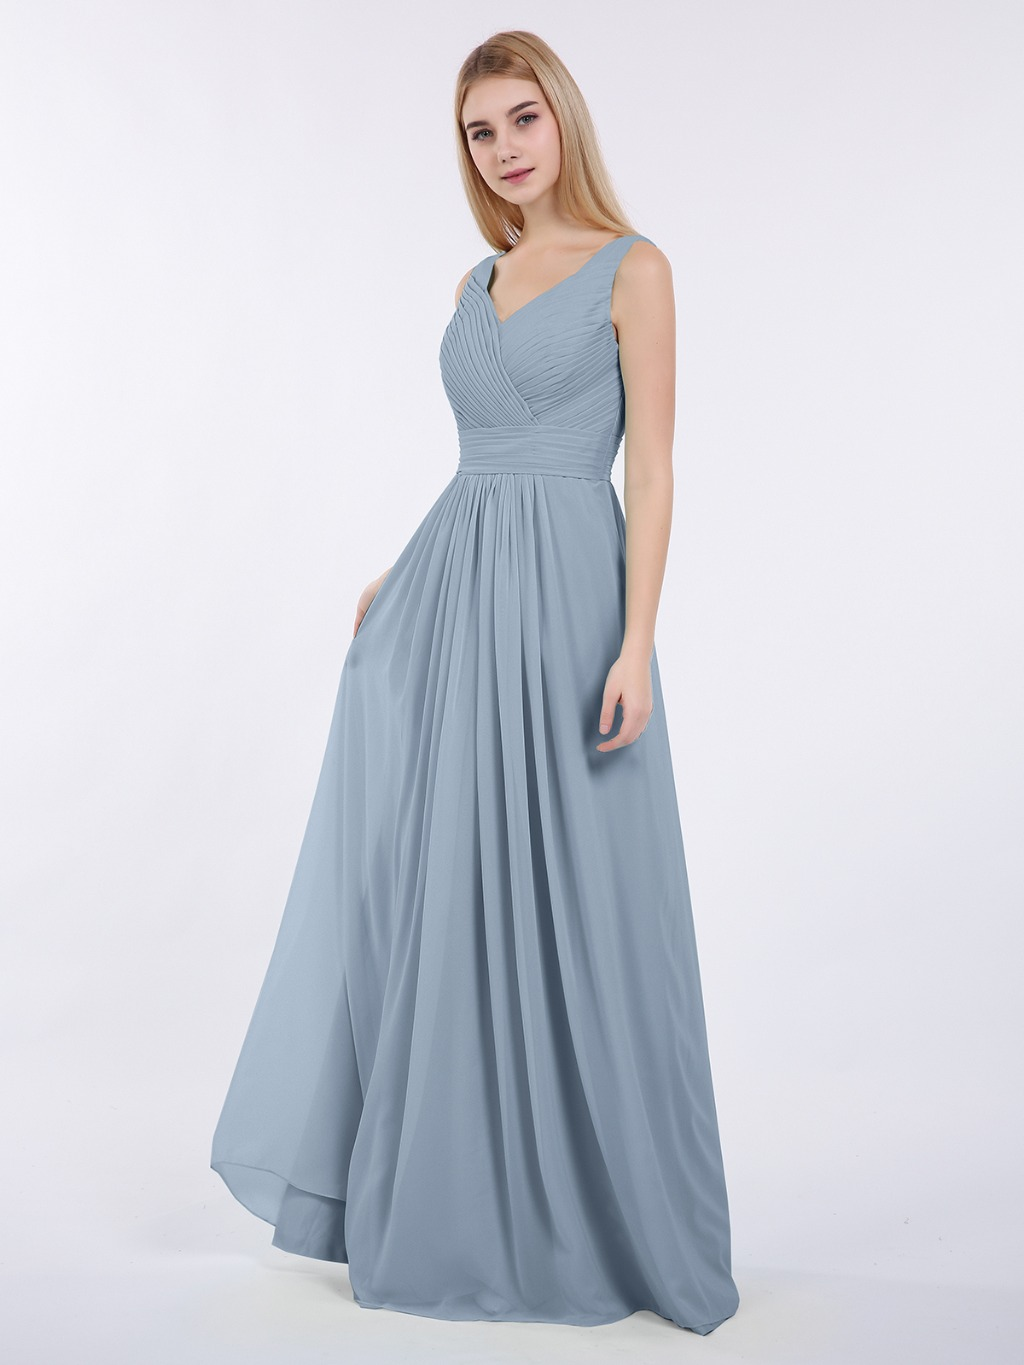 V-neck Full Length Chiffon Dress with Pleated Bodice